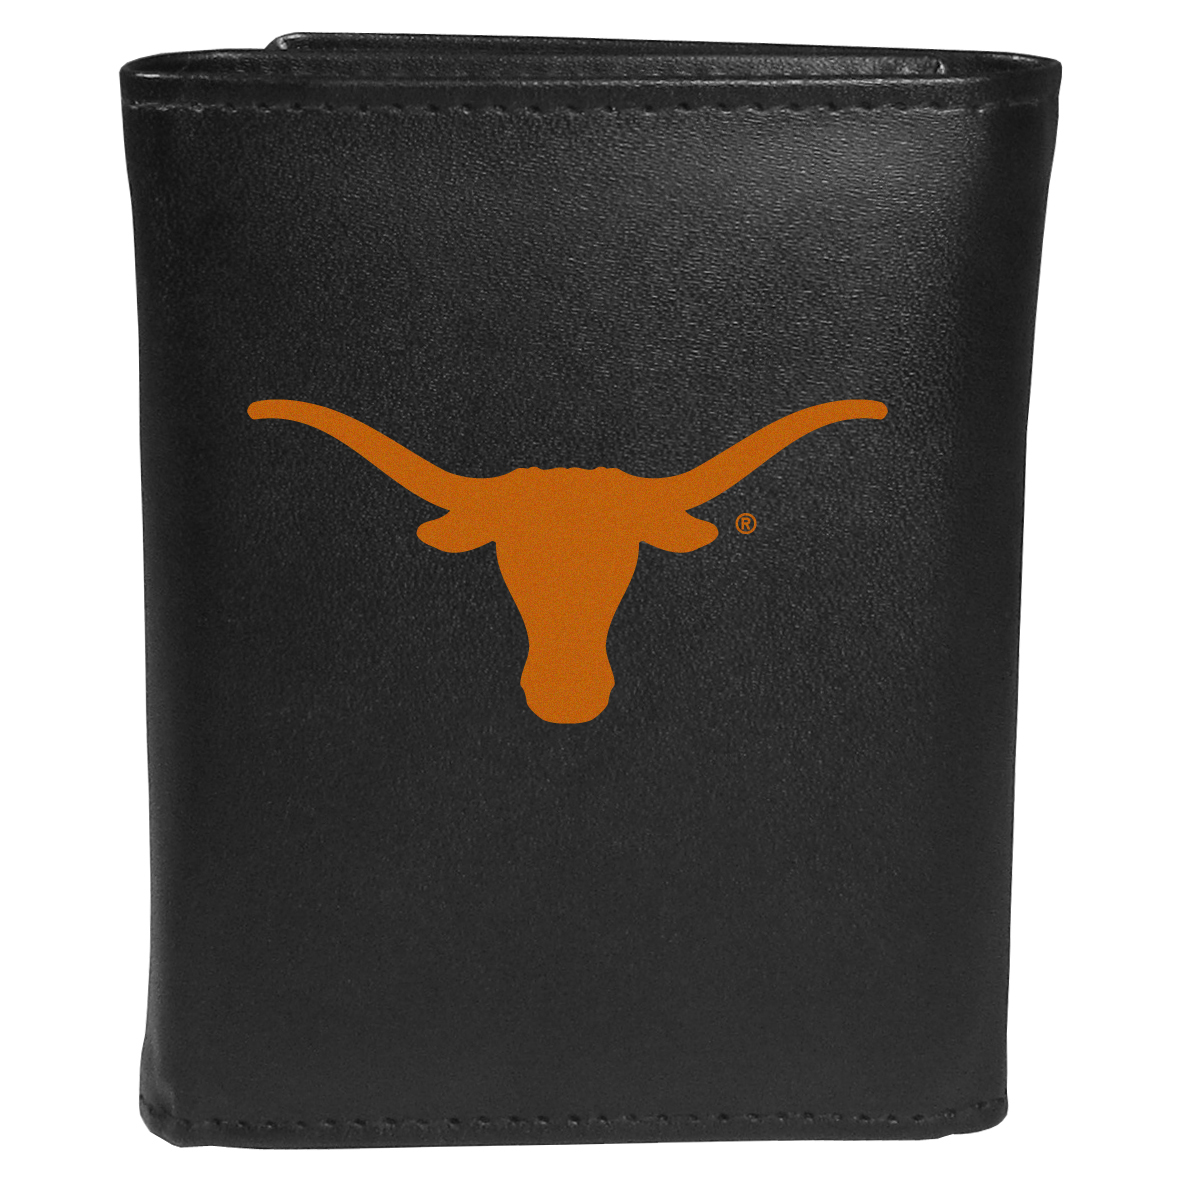 Texas Longhorns Tri-fold Wallet Large Logo - Sports fans do not have to sacrifice style with this classic tri-fold wallet that sports theTexas Longhorns?extra large logo. This men's fashion accessory has a leather grain look and expert craftmanship for a quality wallet at a great price. The wallet features inner credit card slots, windowed ID slot and a large billfold pocket. The front of the wallet features an extra large printed team logo.